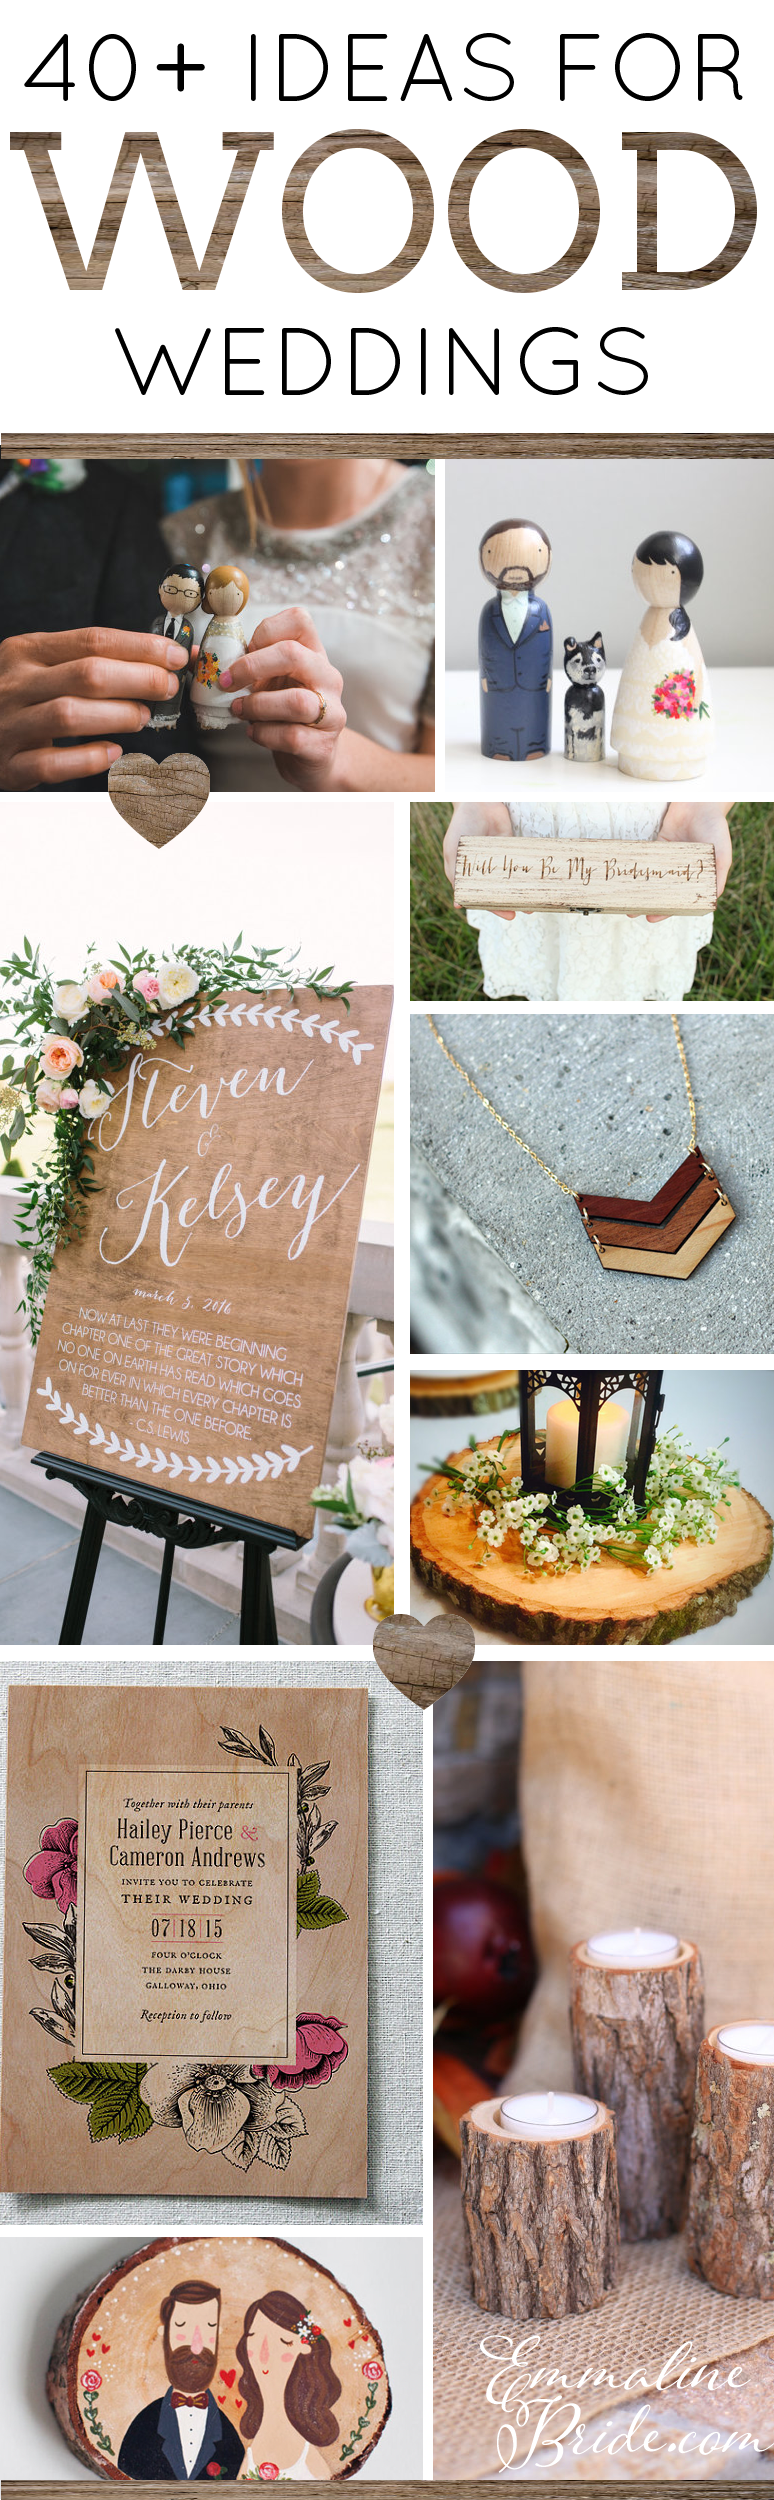 40+ Wood Themed Wedding Ideas by Emmaline Bride | http://emmalinebride.com/themes/wood-themed-wedding-ideas/